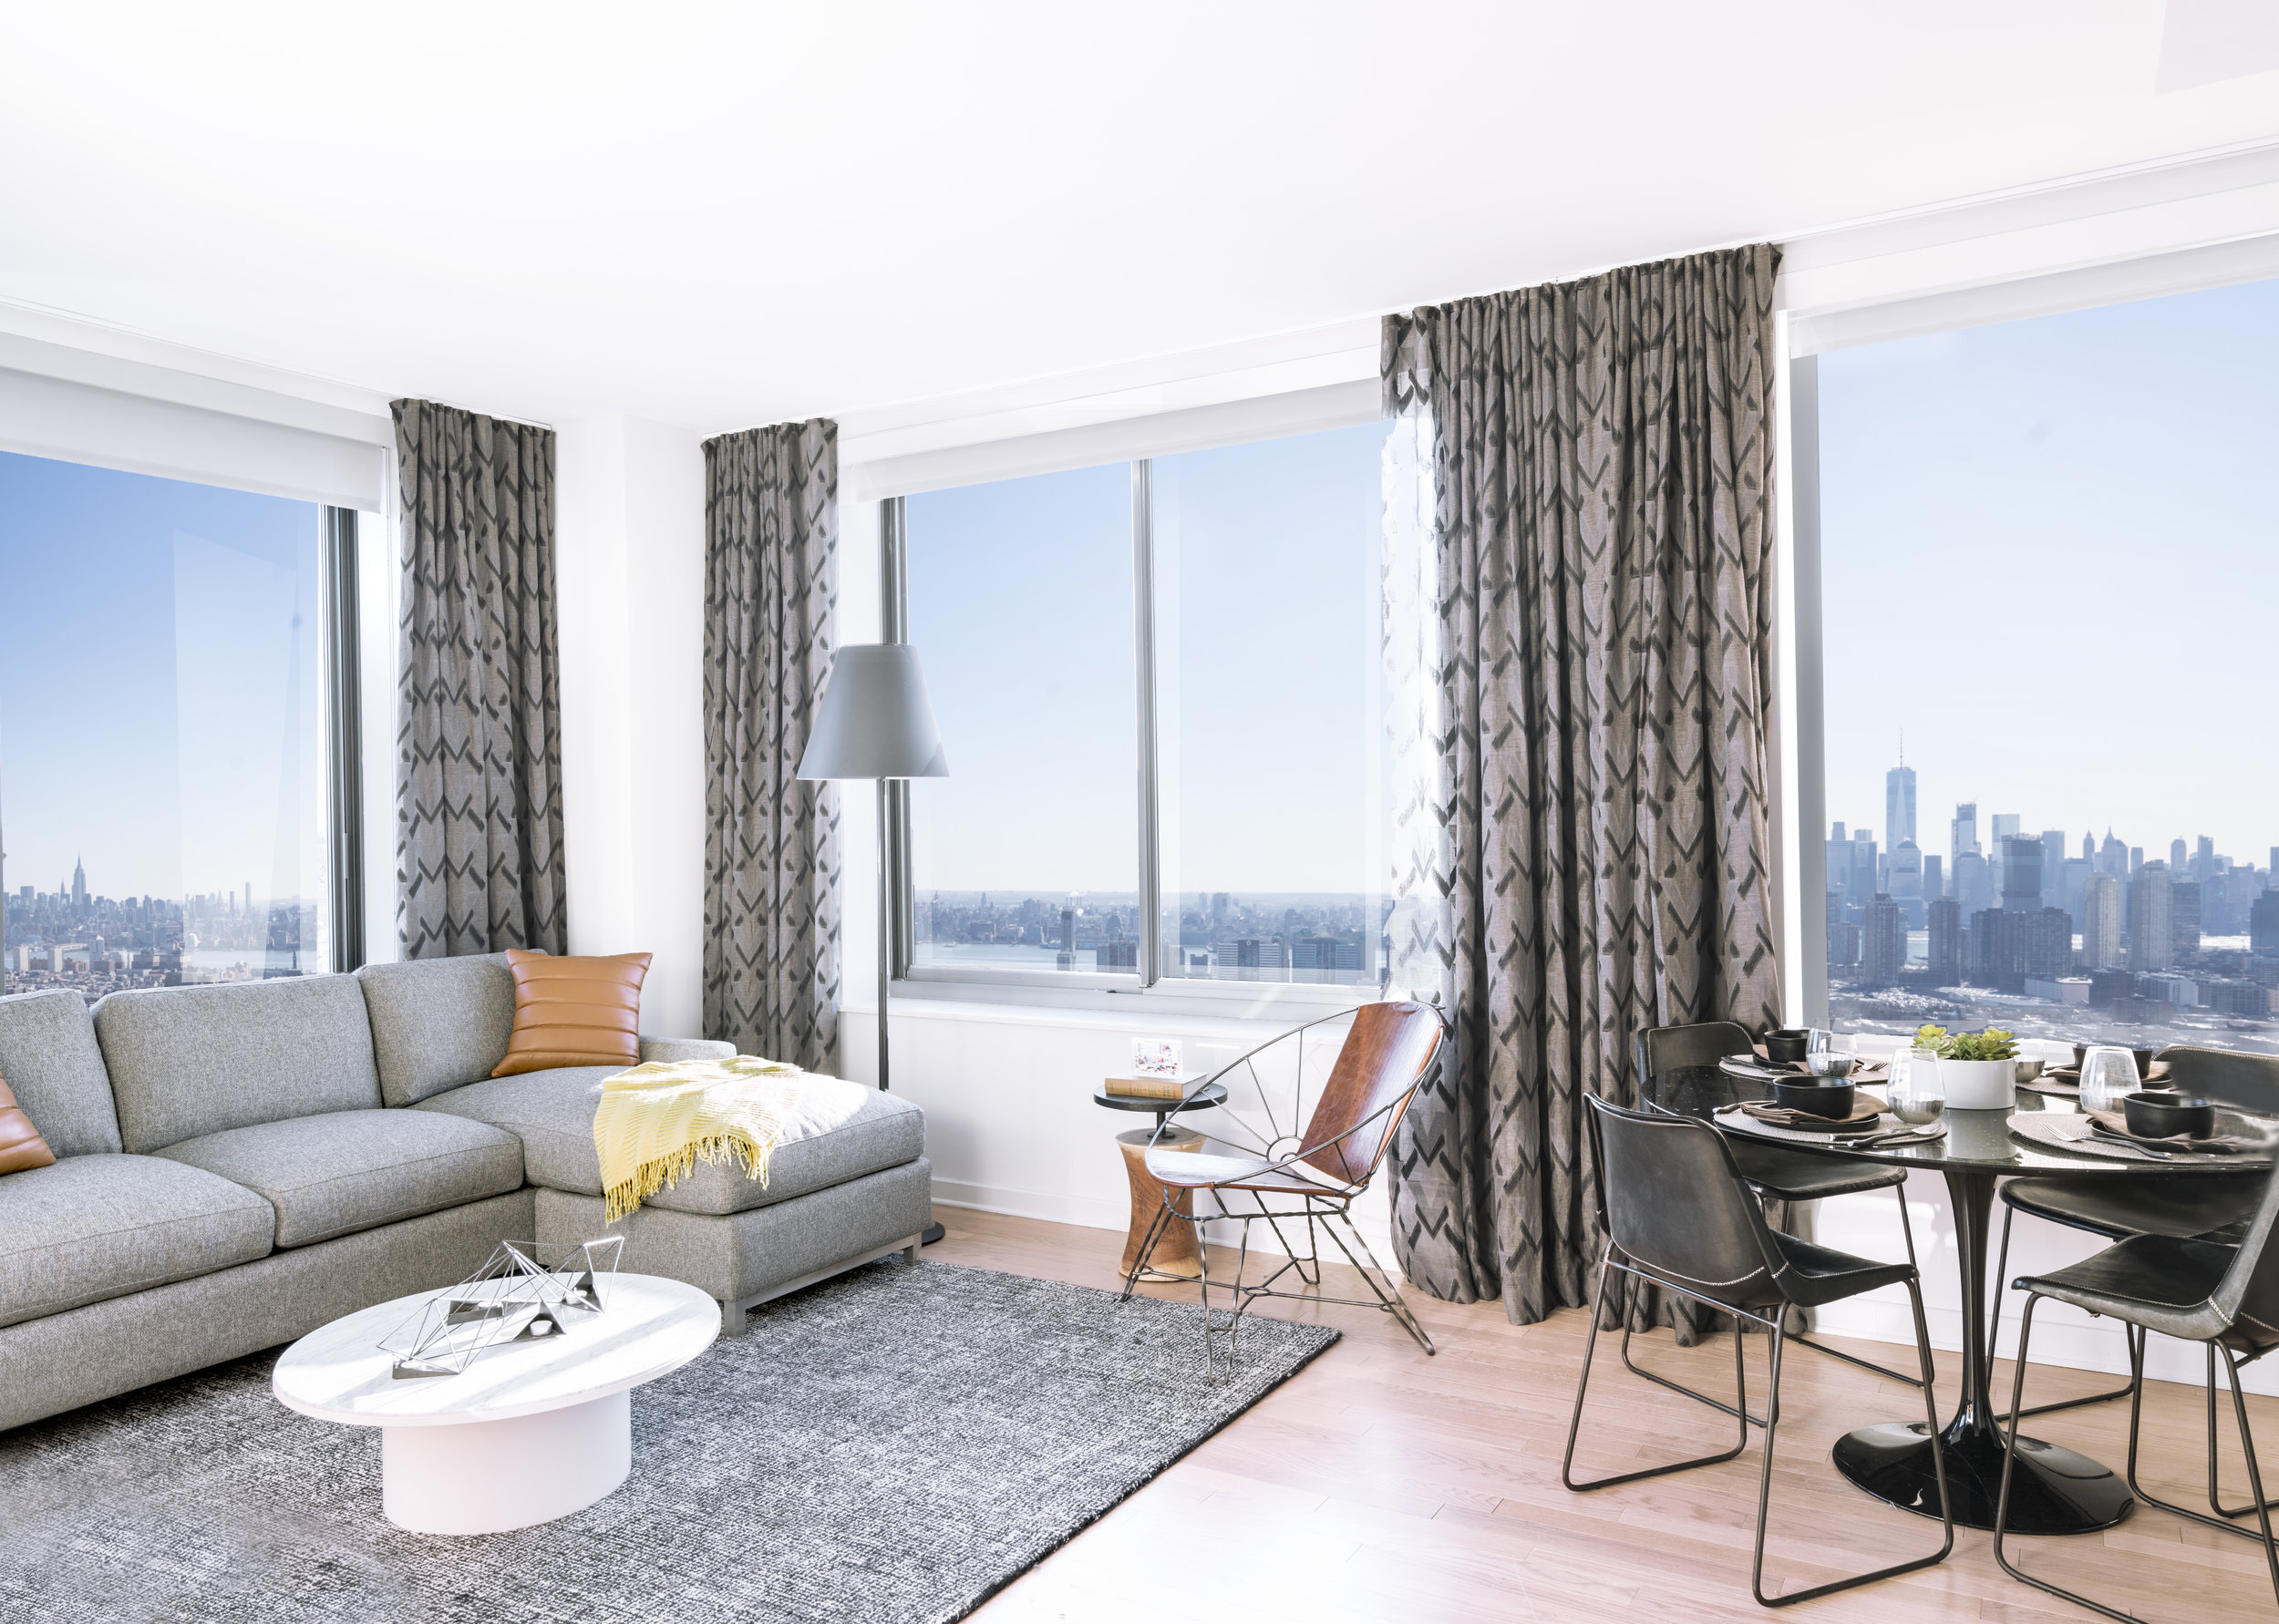 KRE Group's Journal Square in Jersey City Launches Its Penthouse Collection